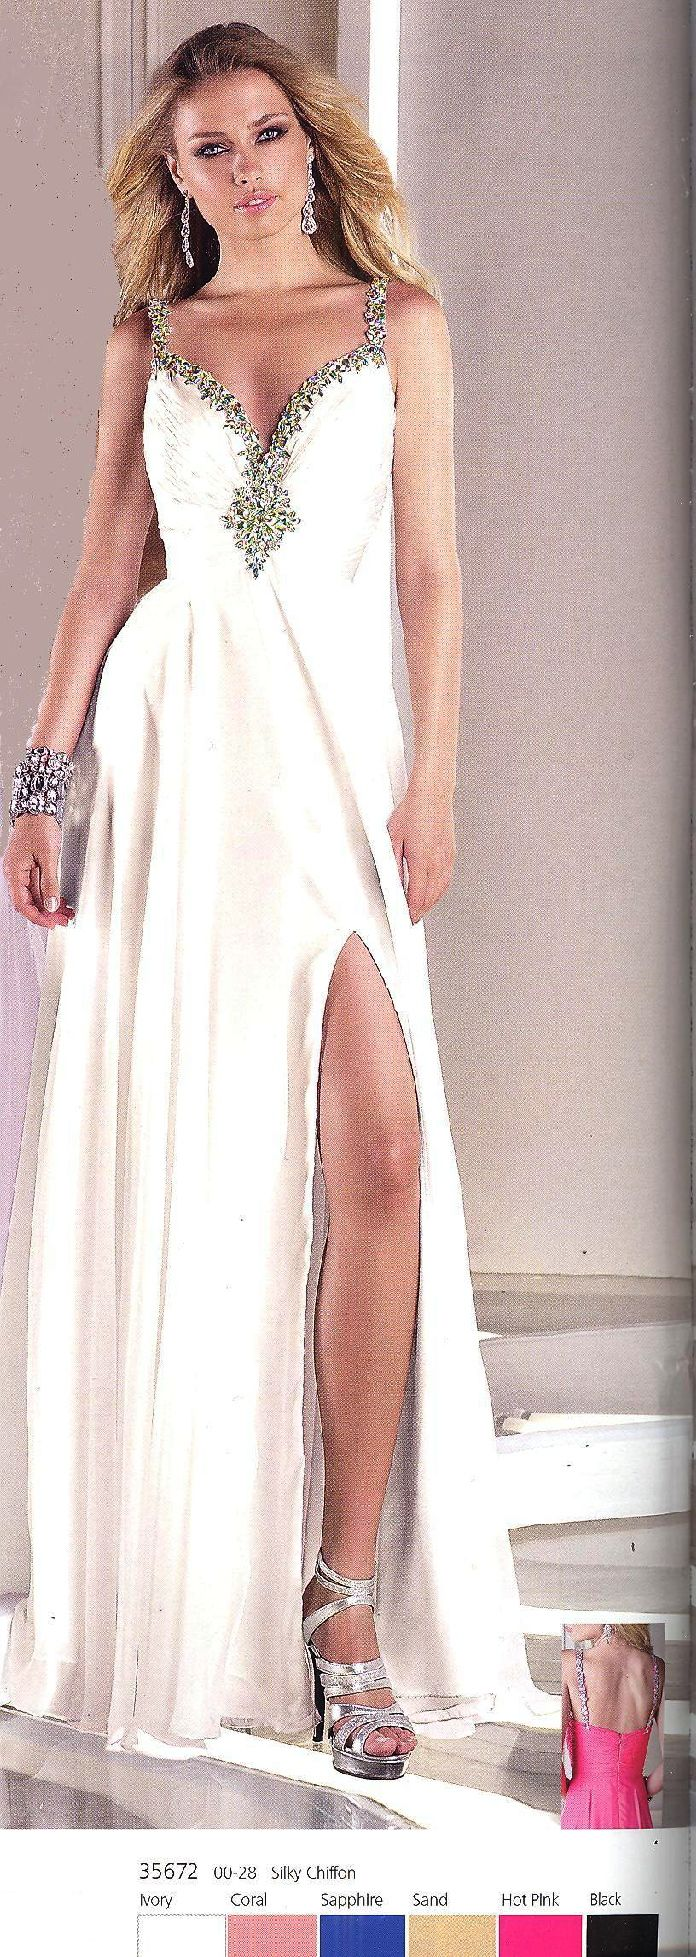 B\'Dazzle Prom Dresses by Alyce Paris<BR>35672<BR>Sheer layered ...